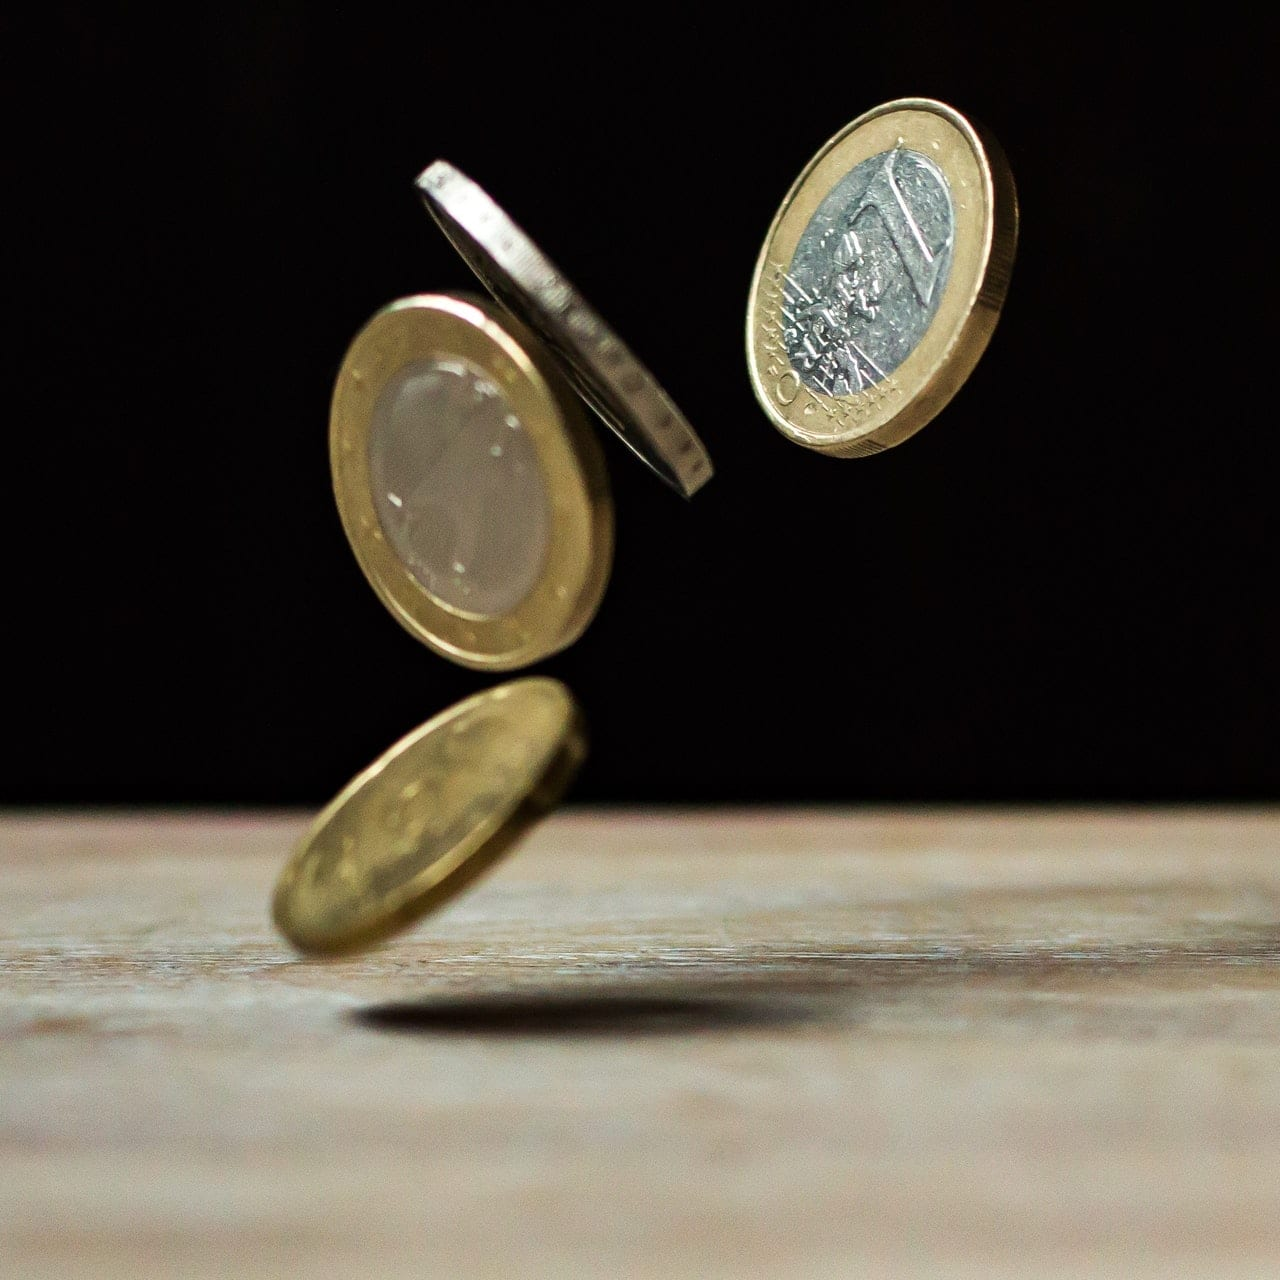 coins falling on table